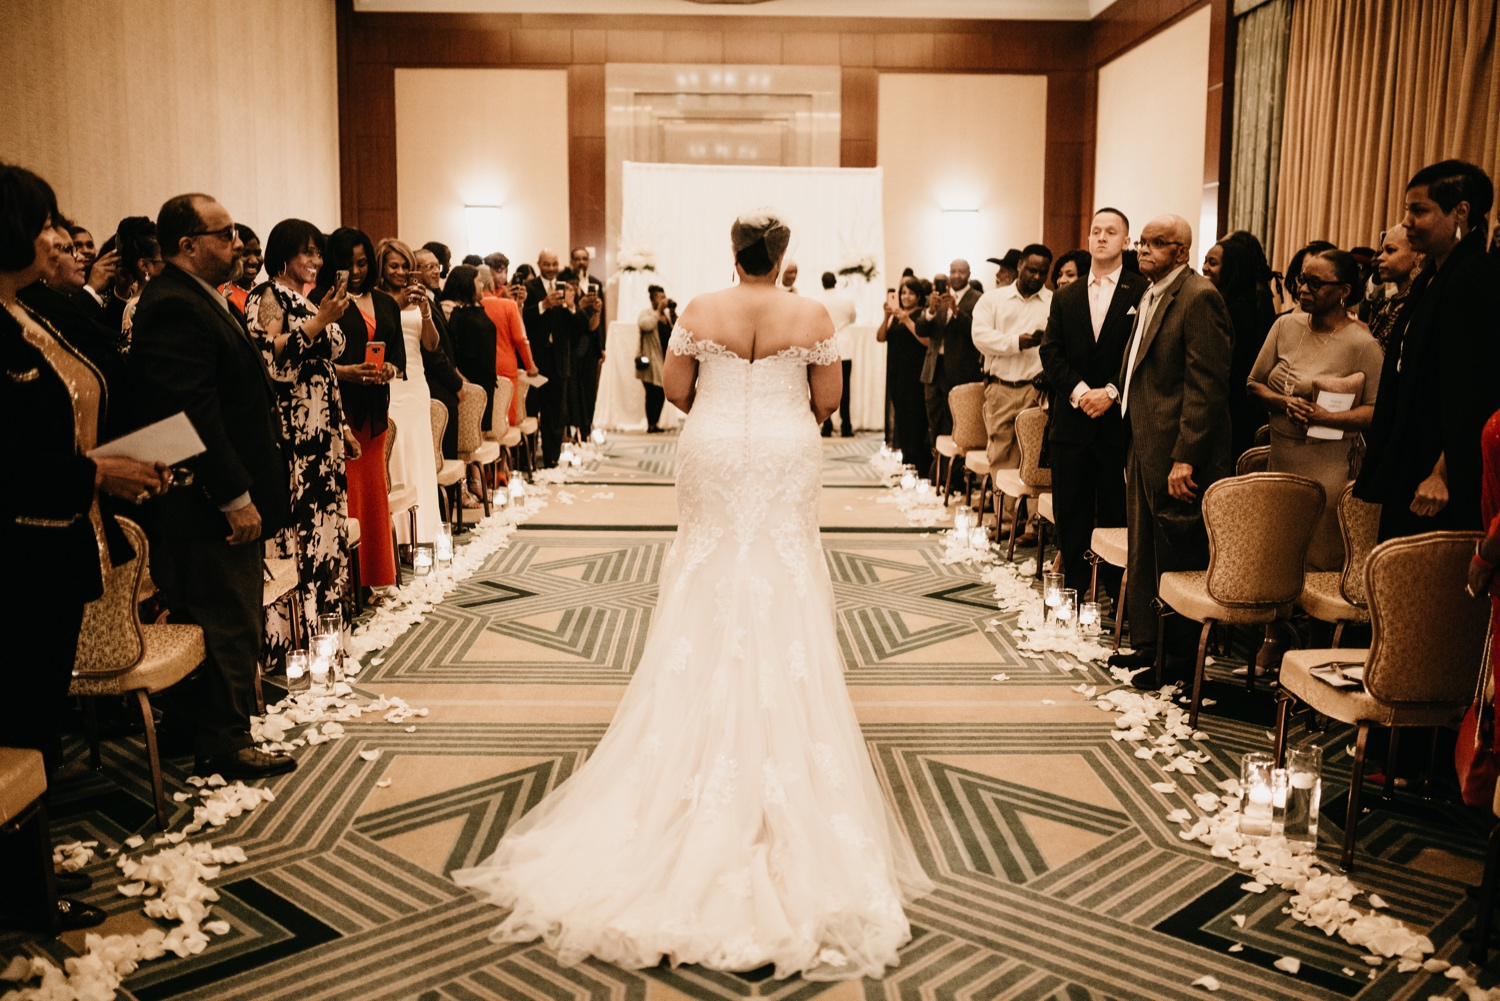 32_Ritz-carlton-wedding_charlotteNC_charlotteweddingphotographer.jpg